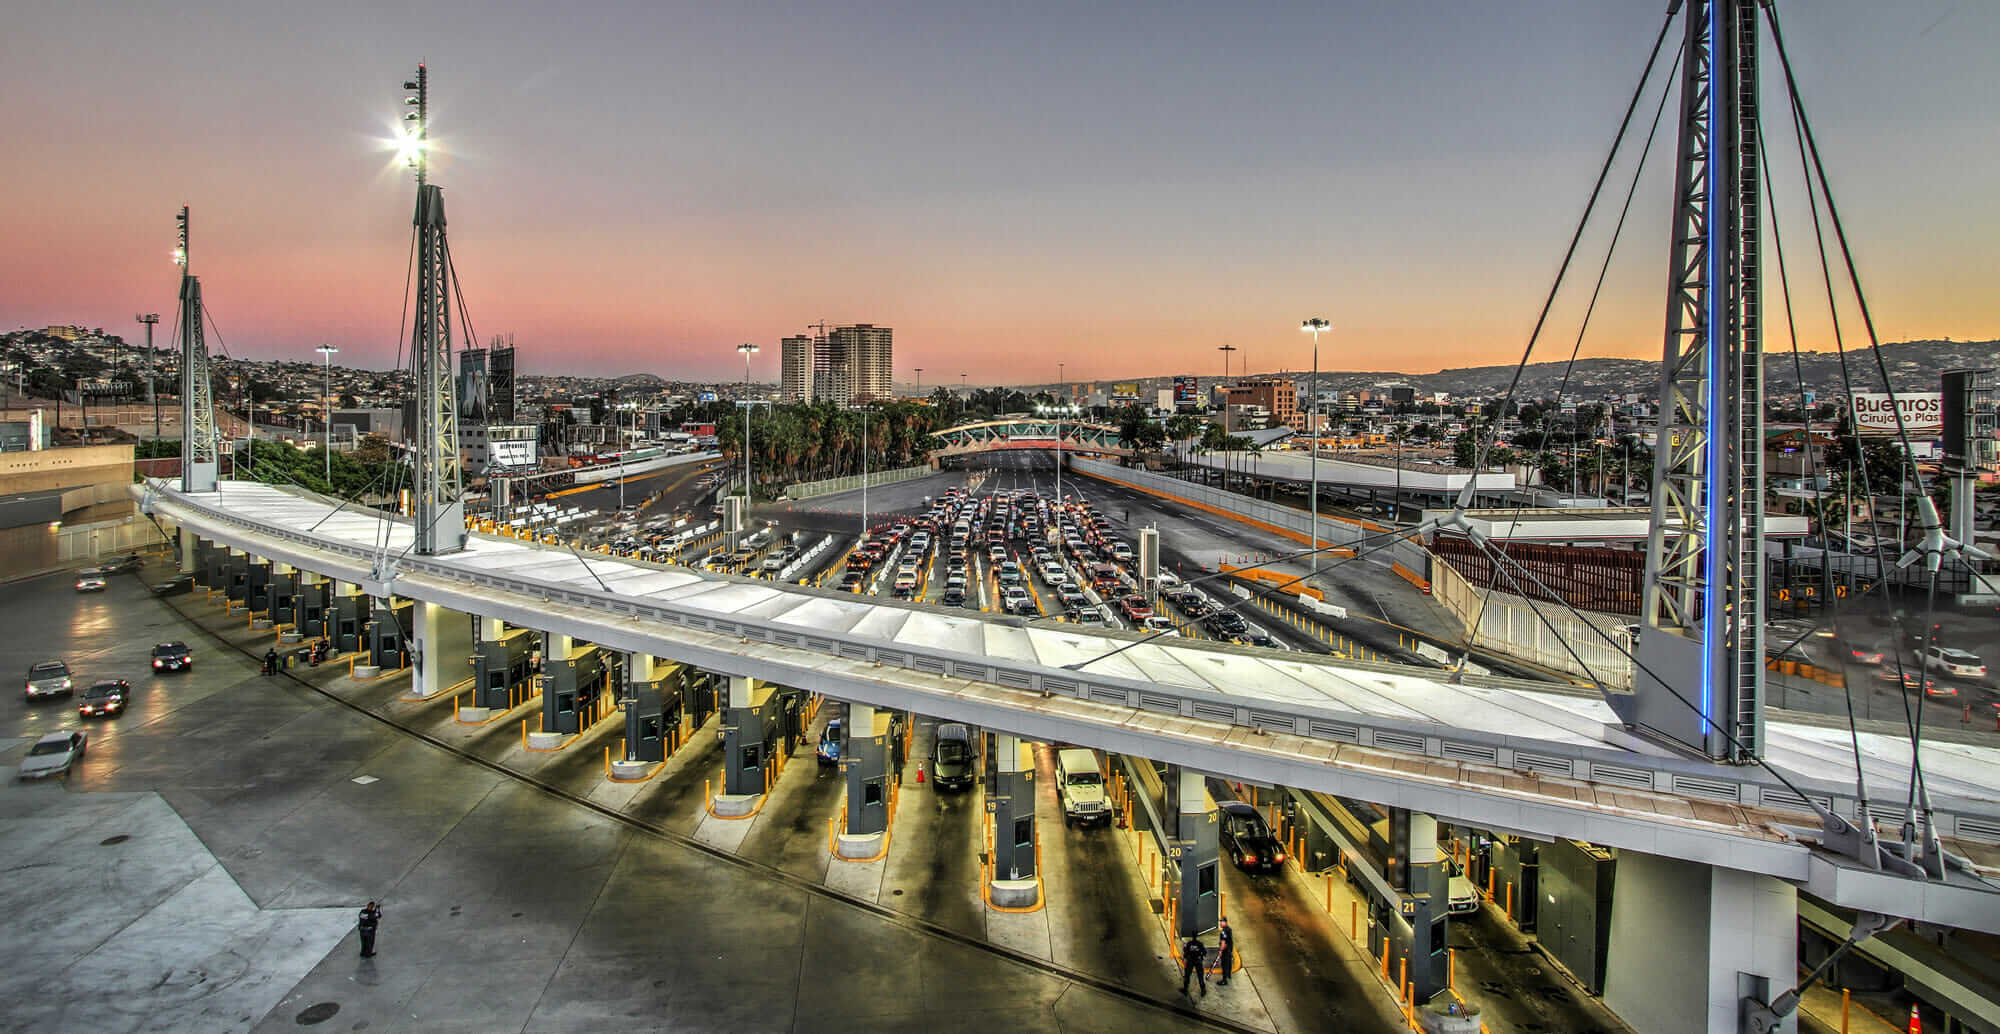 A view of the San Ysidro border crossing from the main building.